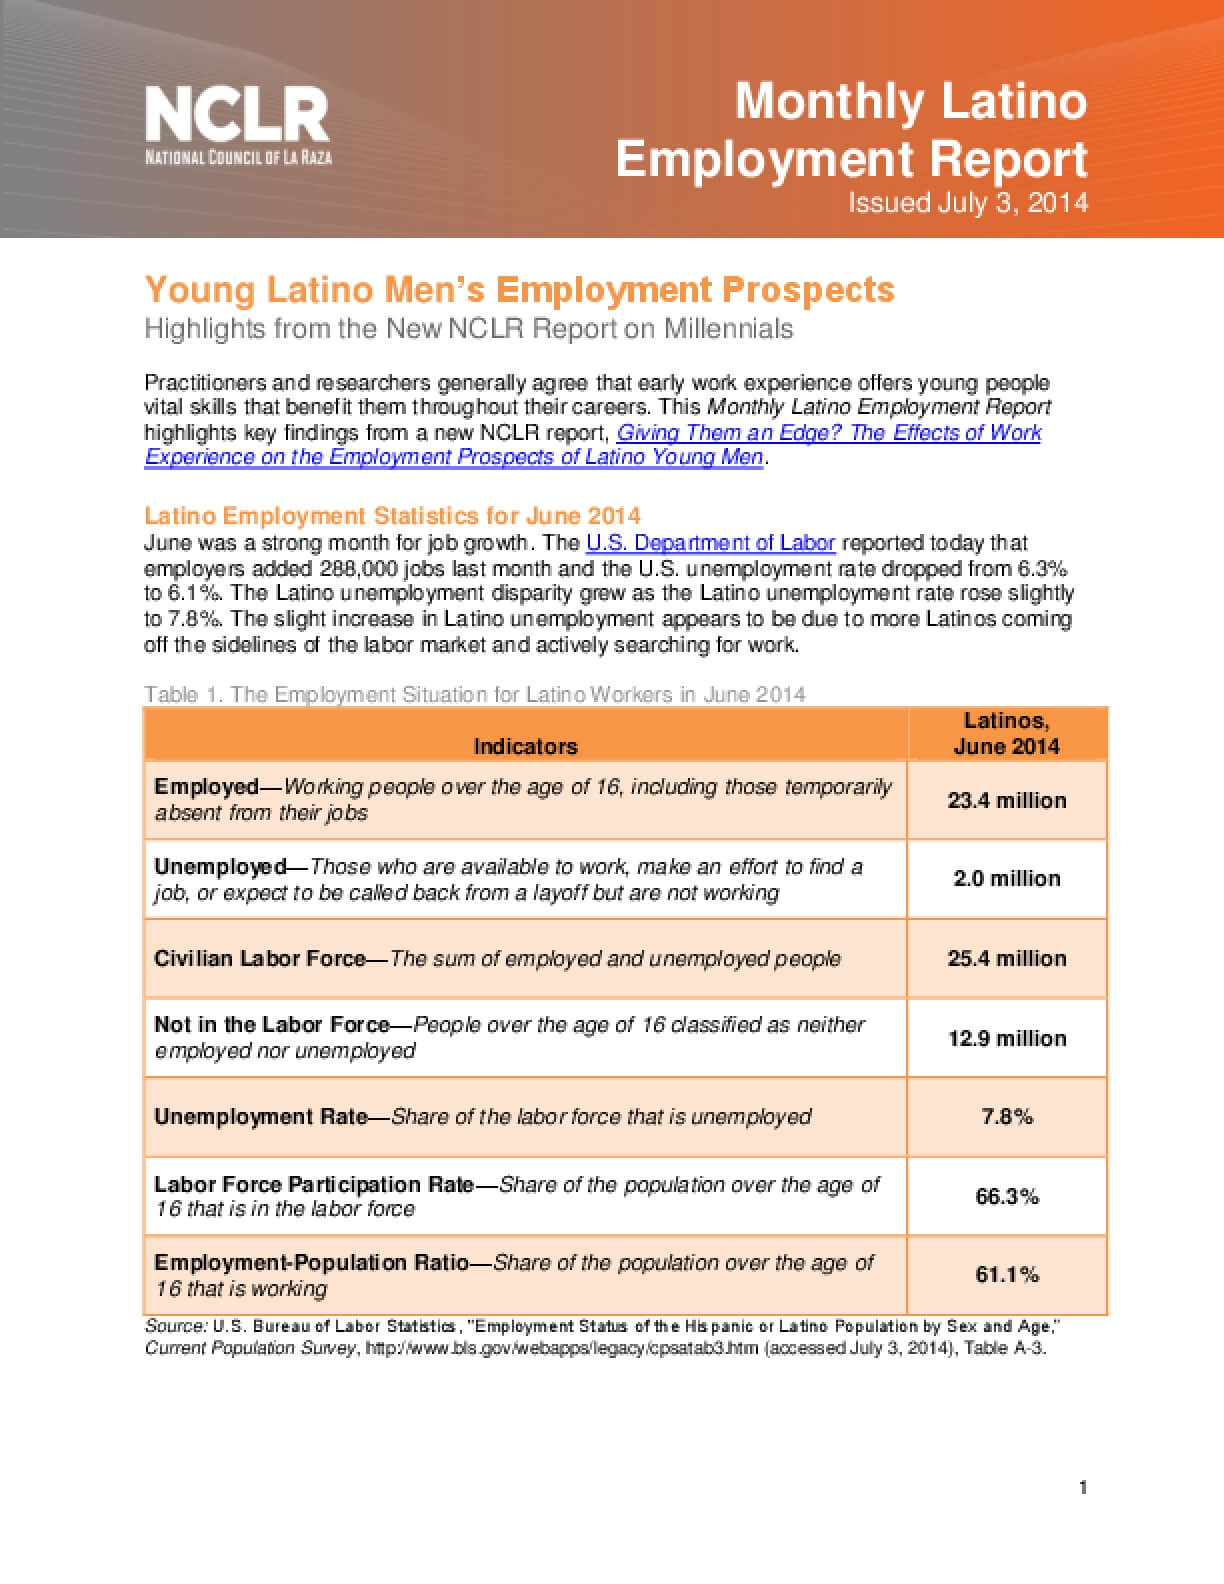 Young Latino Men's Employment Prospects: Monthly Latino Employment Report